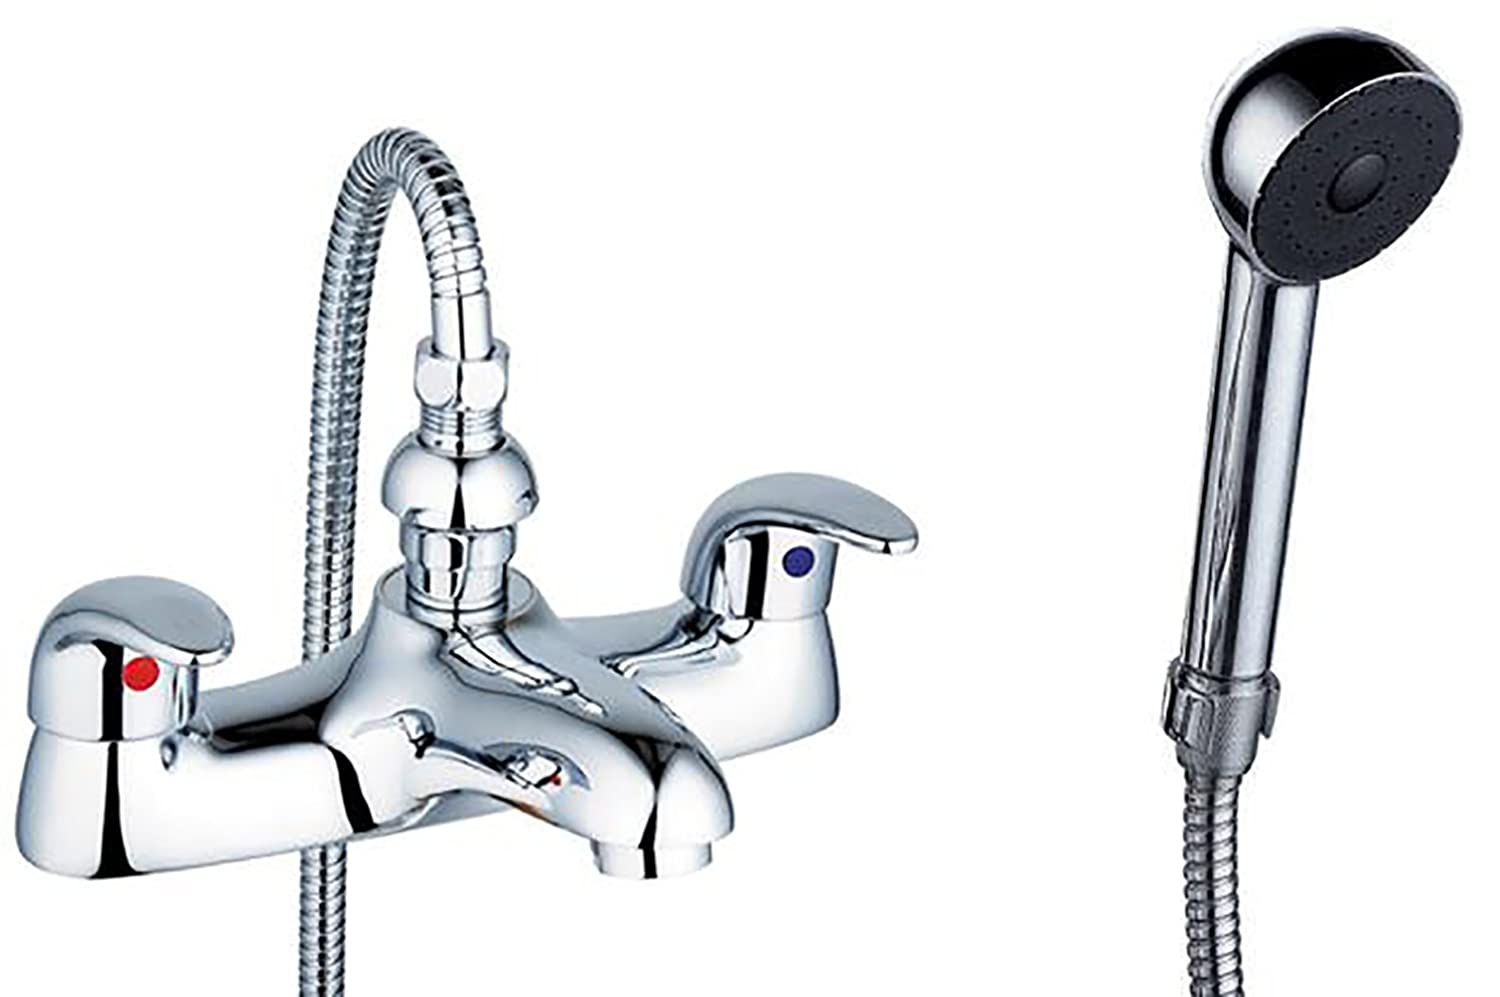 grandtapz tm bath mixer tap and shower 1809 amazon co uk diy grandtapz tm bath mixer tap and shower 1809 amazon co uk diy tools